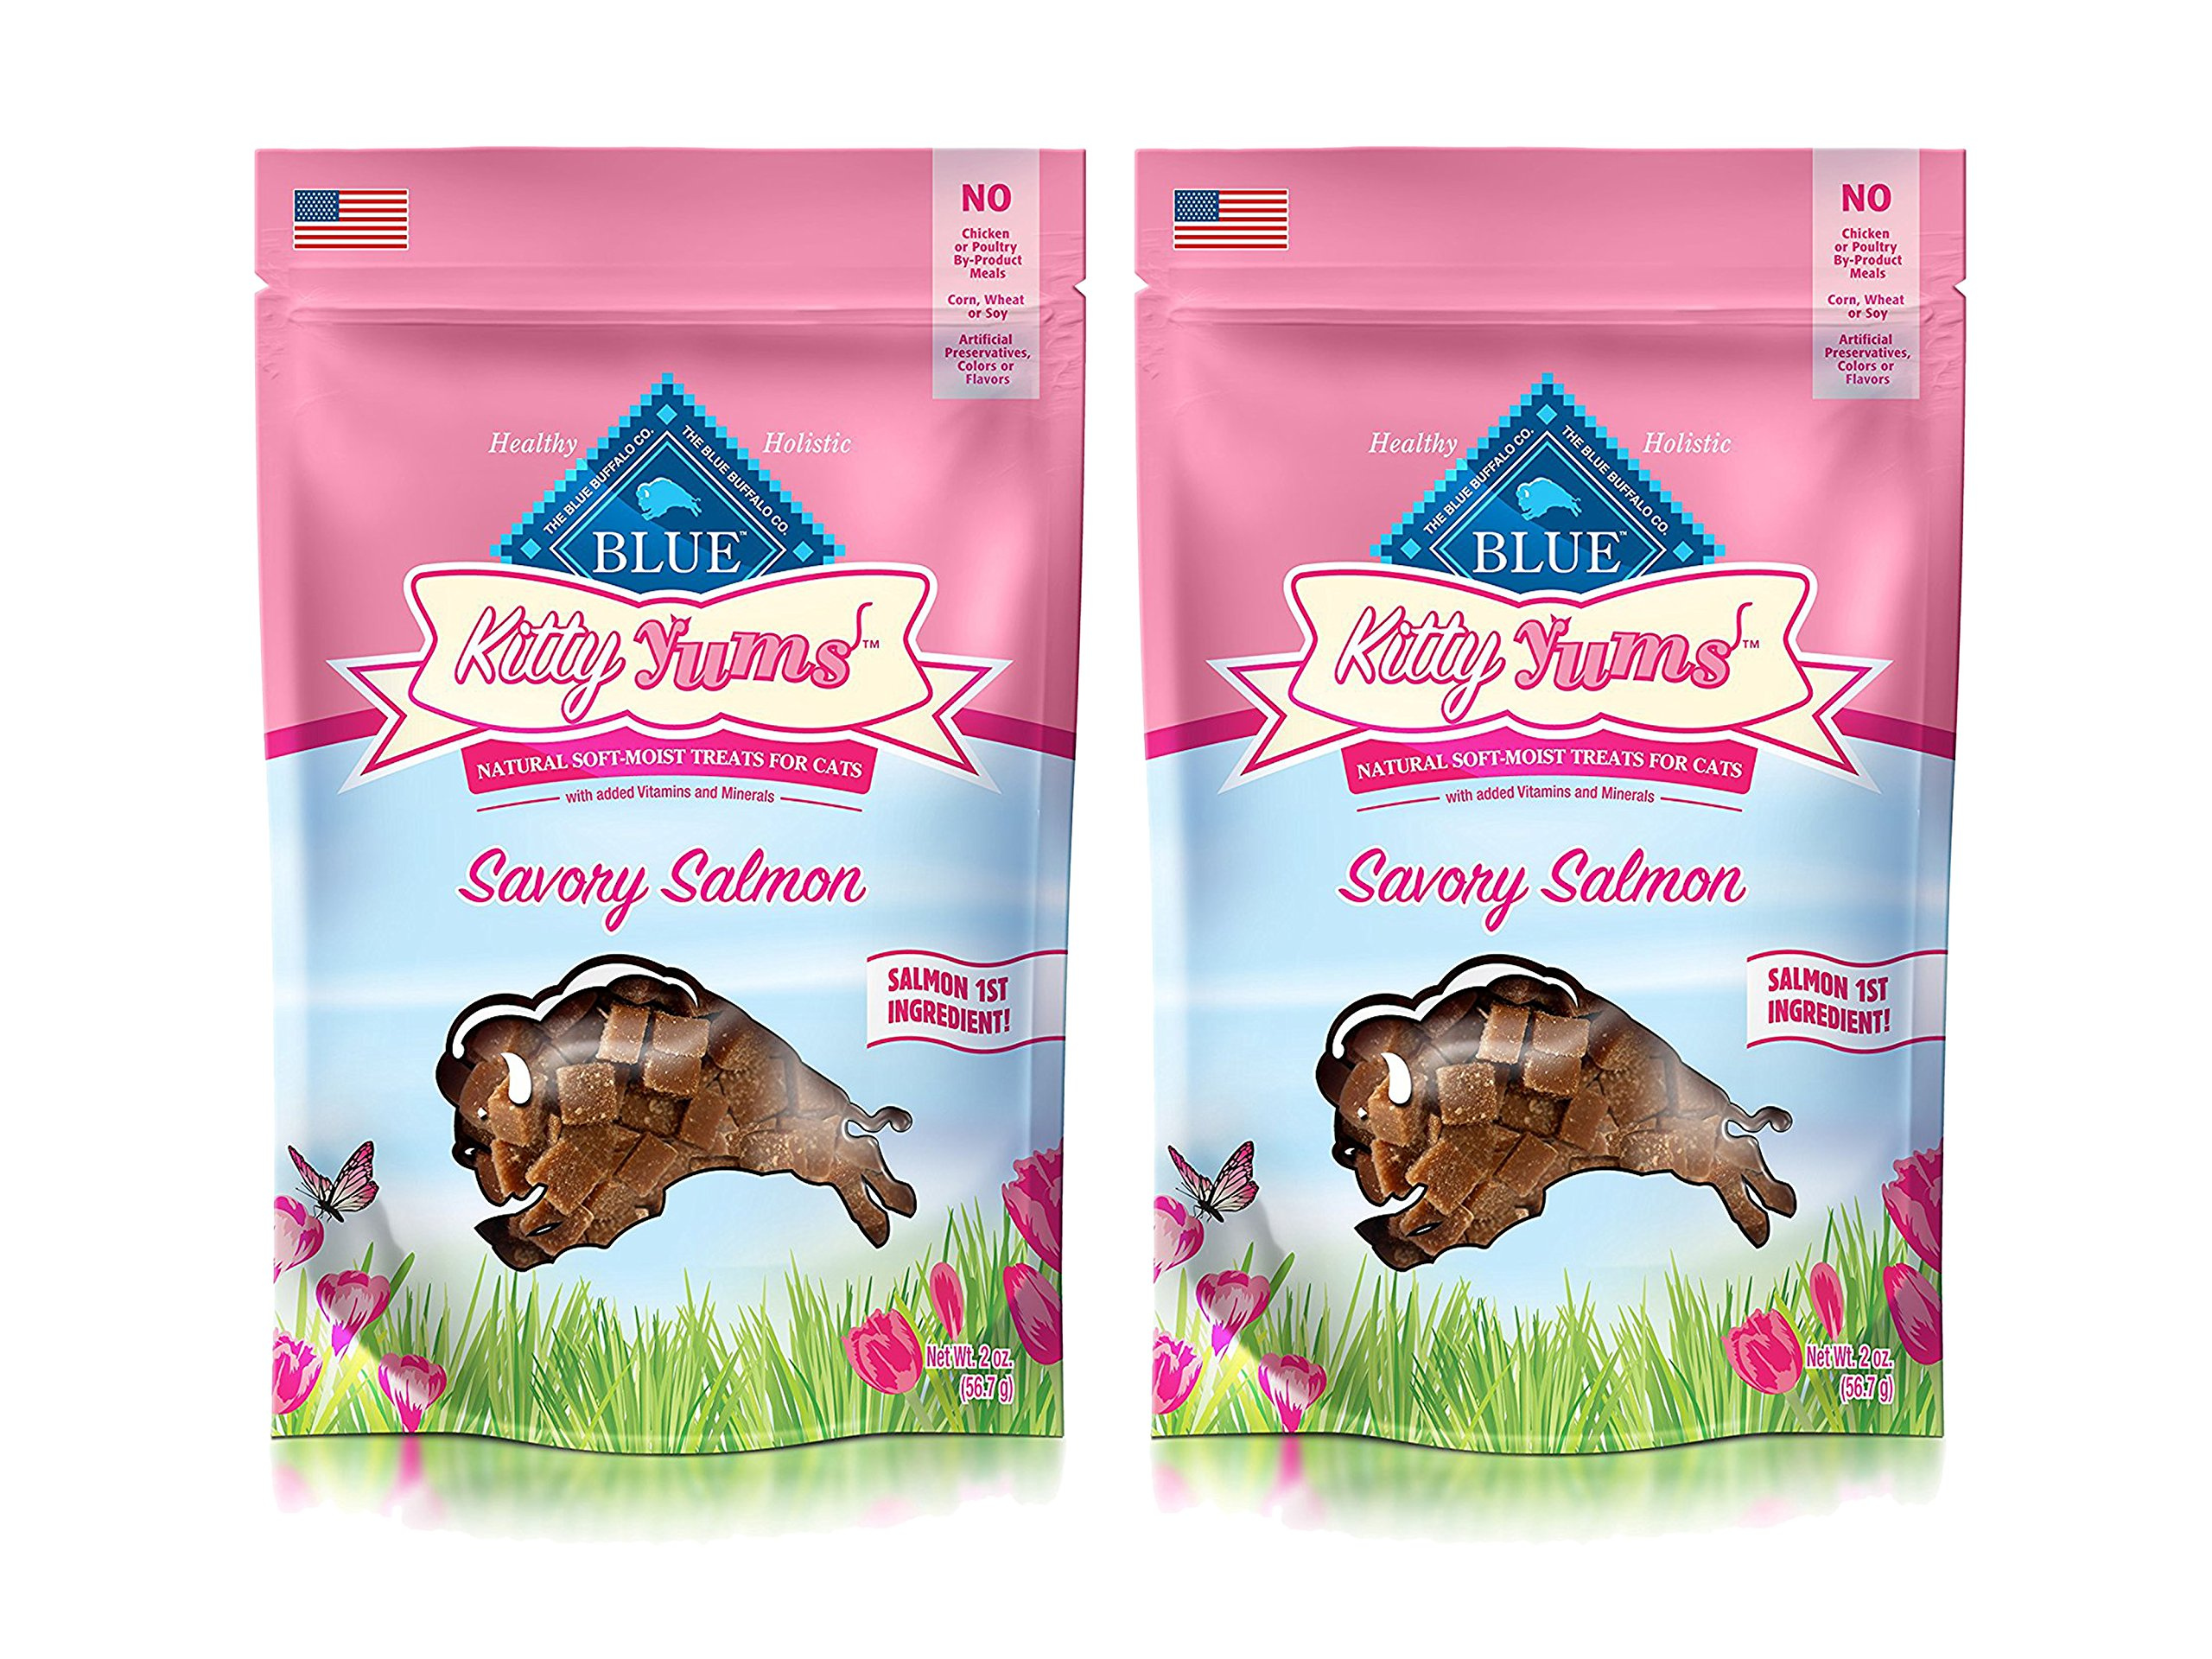 Animal Supply Co. Set of 2 Blue Kitty Yums Savory Salmon Recipe bundled by Maven Gifts by Animal Supply Co. (Image #1)